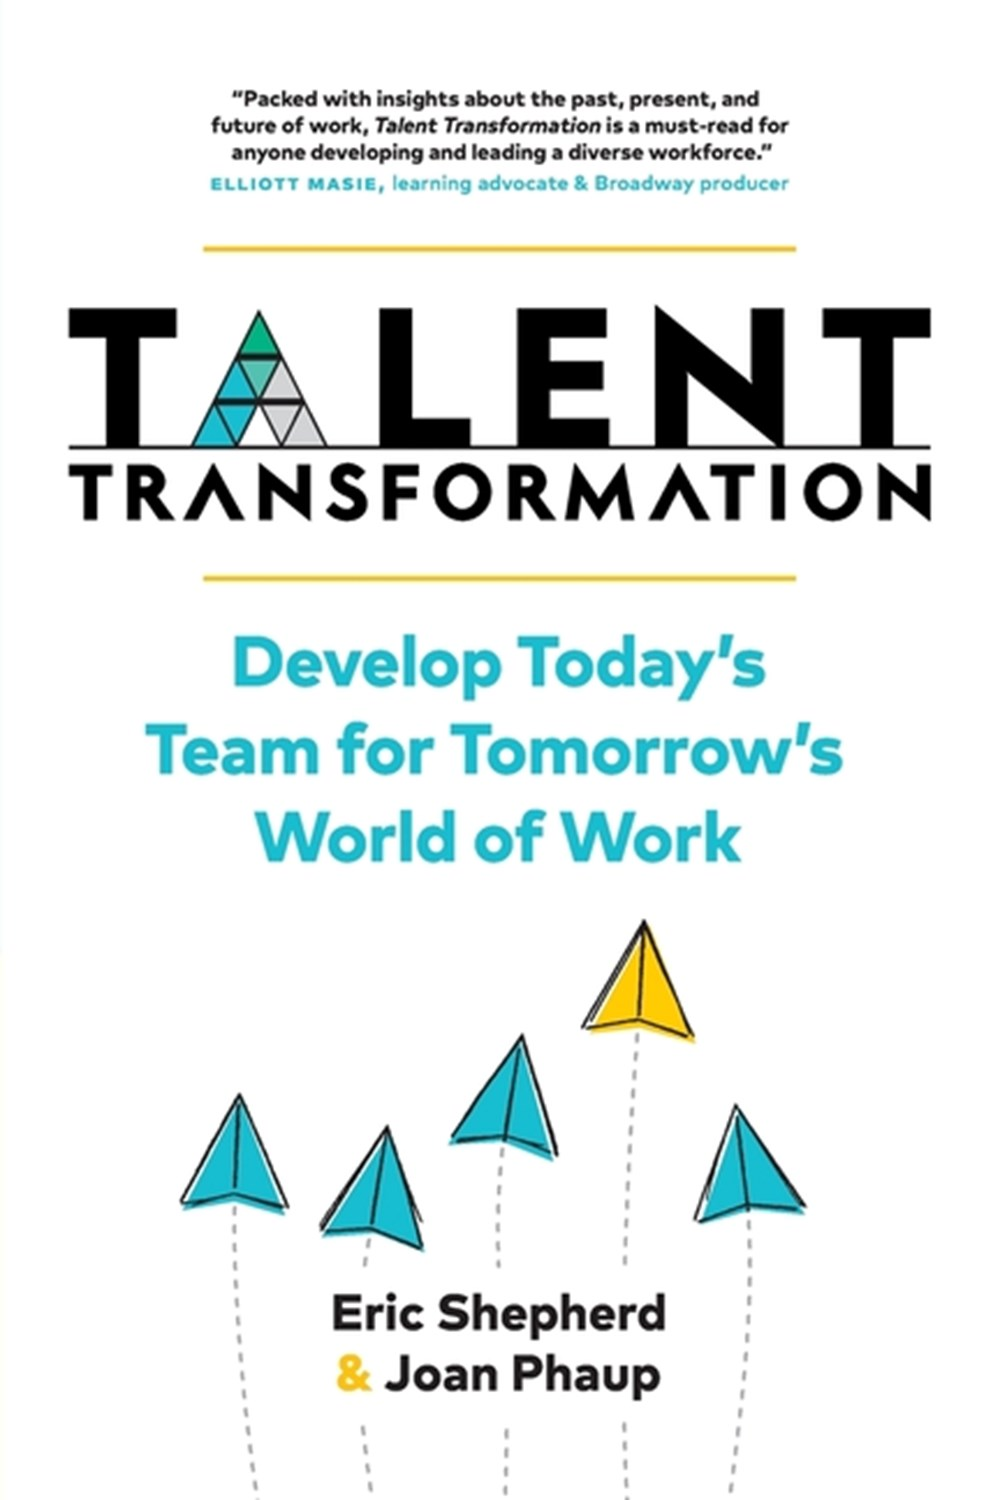 Talent Transformation Develop Today's Team for Tomorrow's World of Work